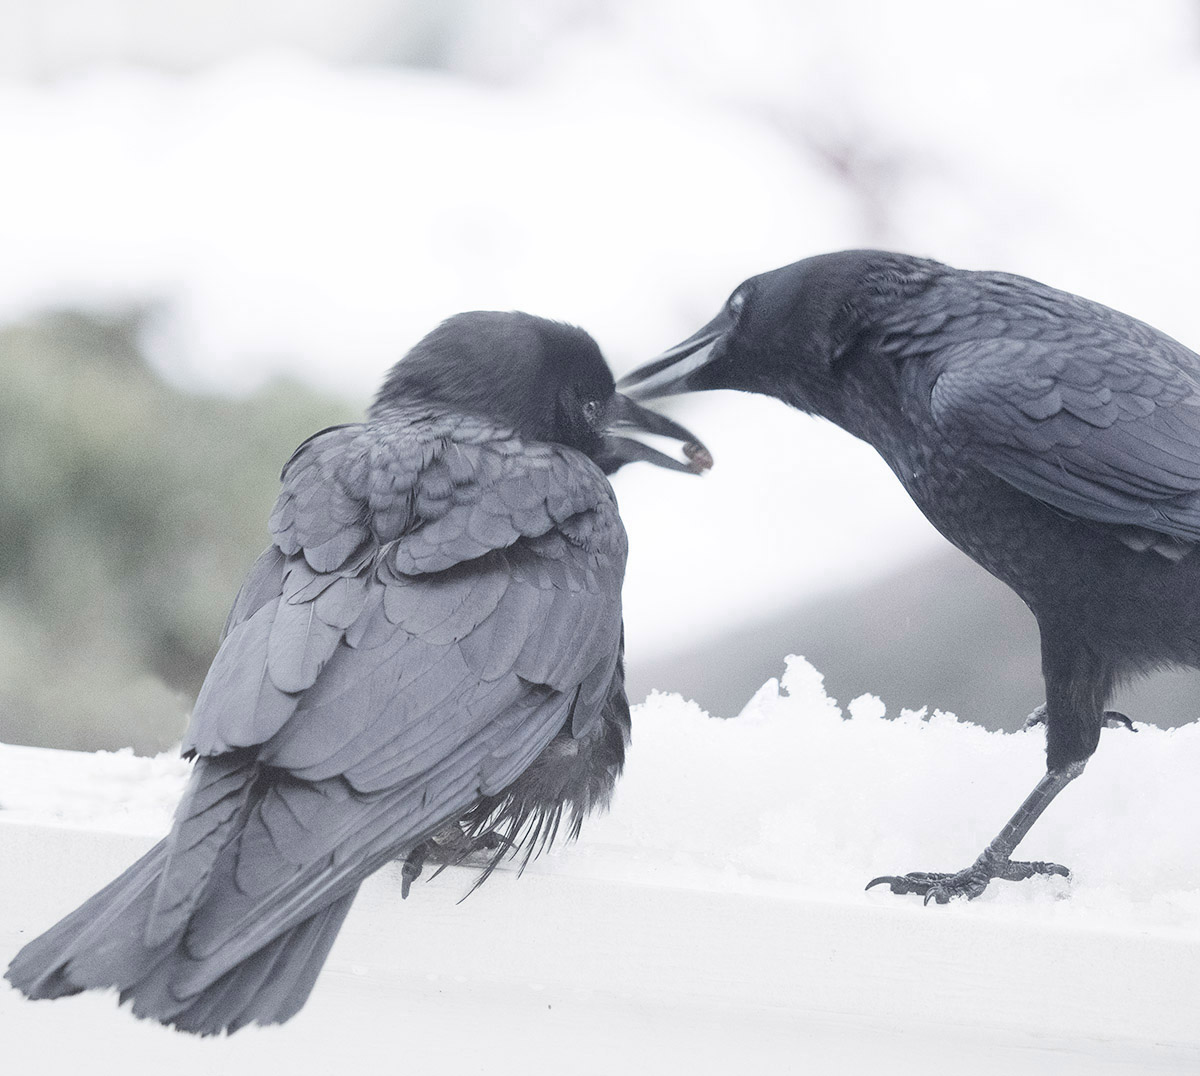 Baby Crow and Parent